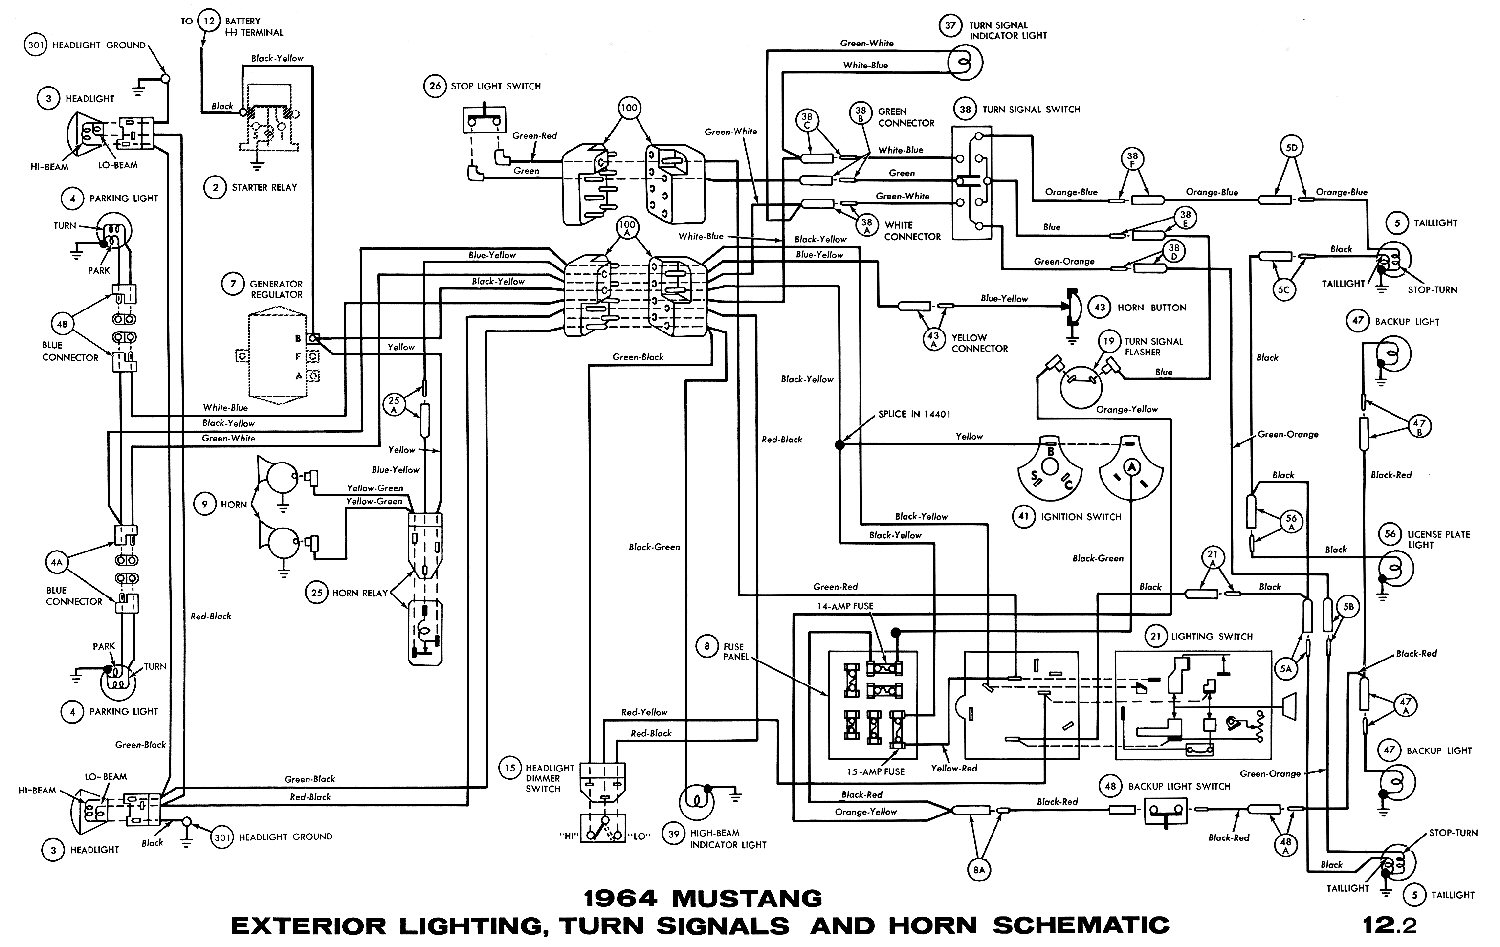 1964i 1964 mustang wiring diagrams average joe restoration 1969 mustang instrument cluster wiring diagram at n-0.co